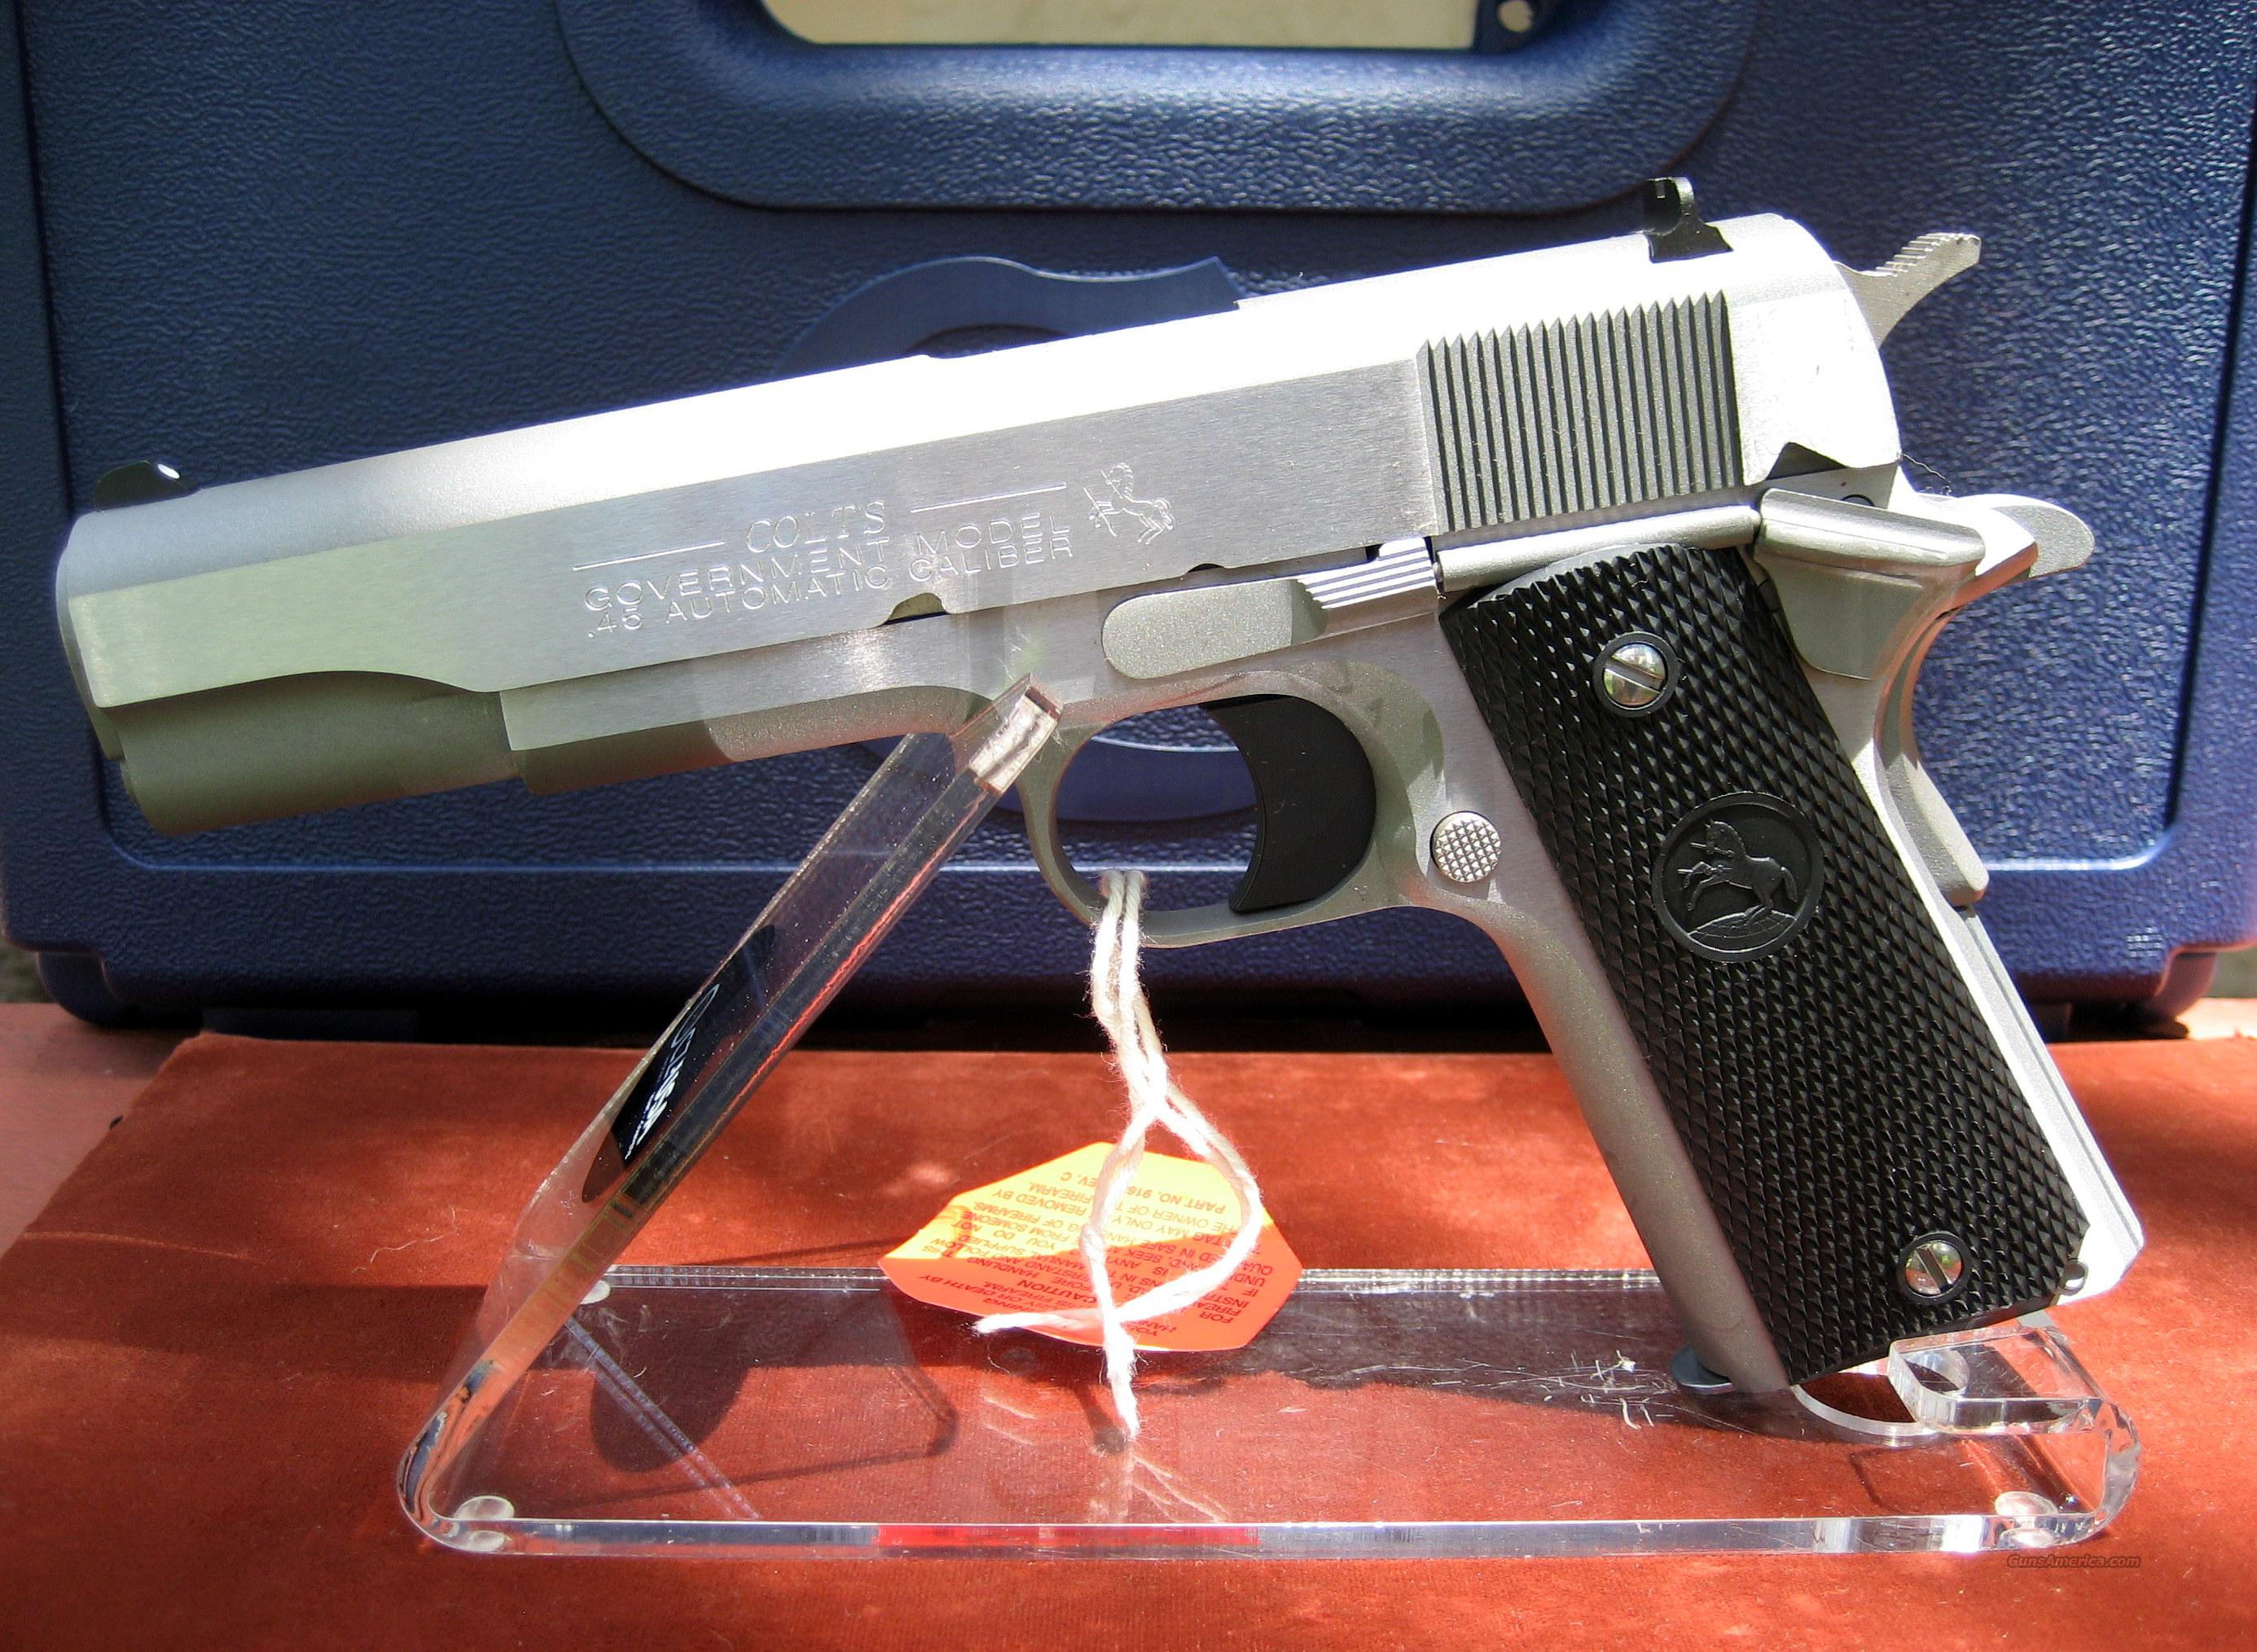 COLT STAINLESS STEEL O1991 SERIES MODEL #O1091  Guns > Pistols > Colt Automatic Pistols (1911 & Var)